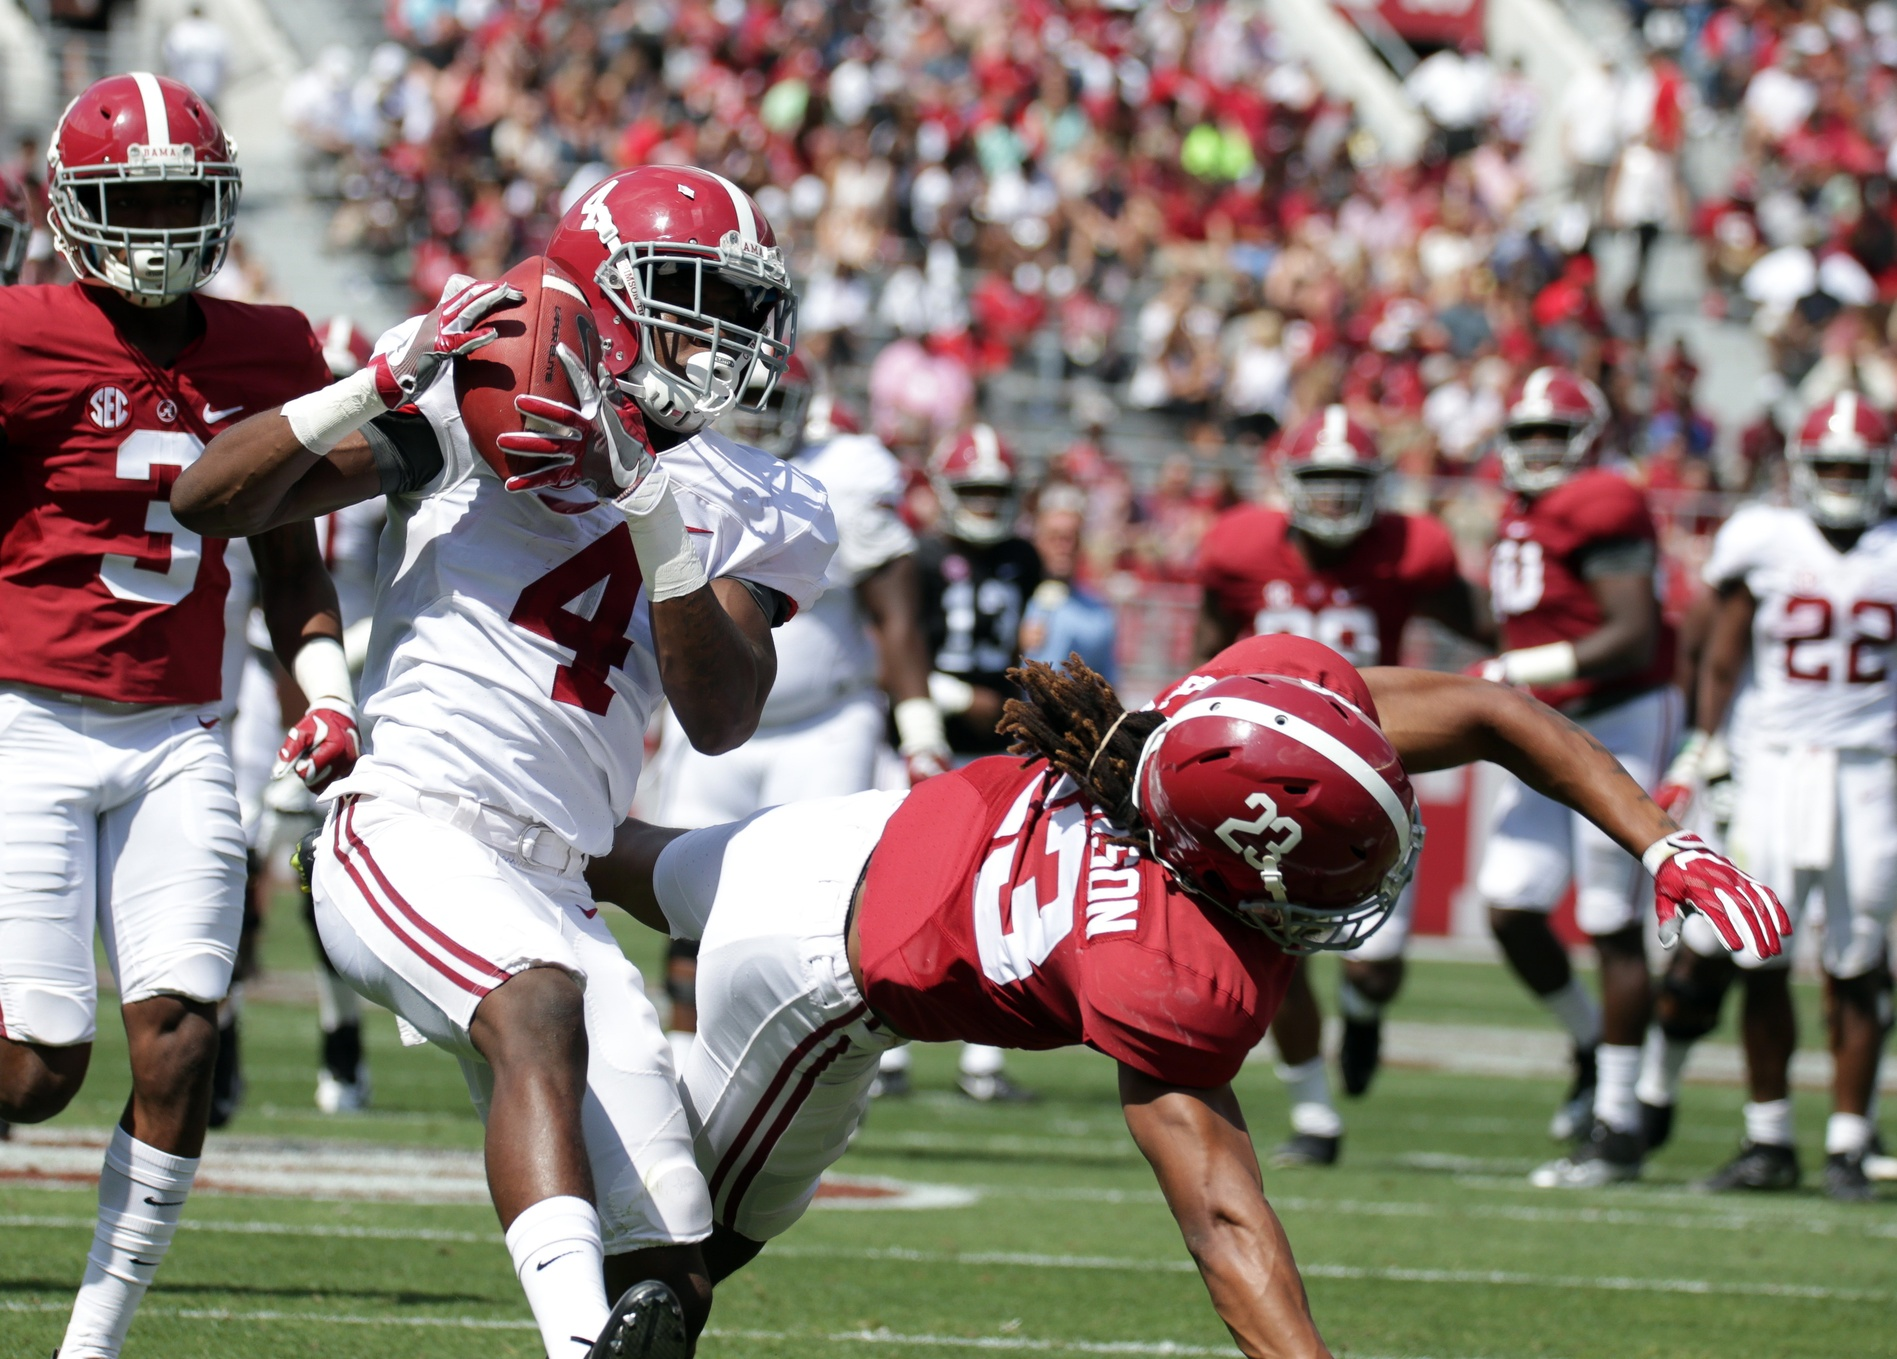 Apr 22, 2017; Tuscaloosa, AL, USA; Alabama Crimson Tide wide receiver Jerry Jeudy (4) goes up for the ball against Alabama Crimson Tide defensive back Aaron Robinson (23) for a score during the A-day game at Bryant Denny Stadium. Mandatory Credit: Marvin Gentry-USA TODAY Sports